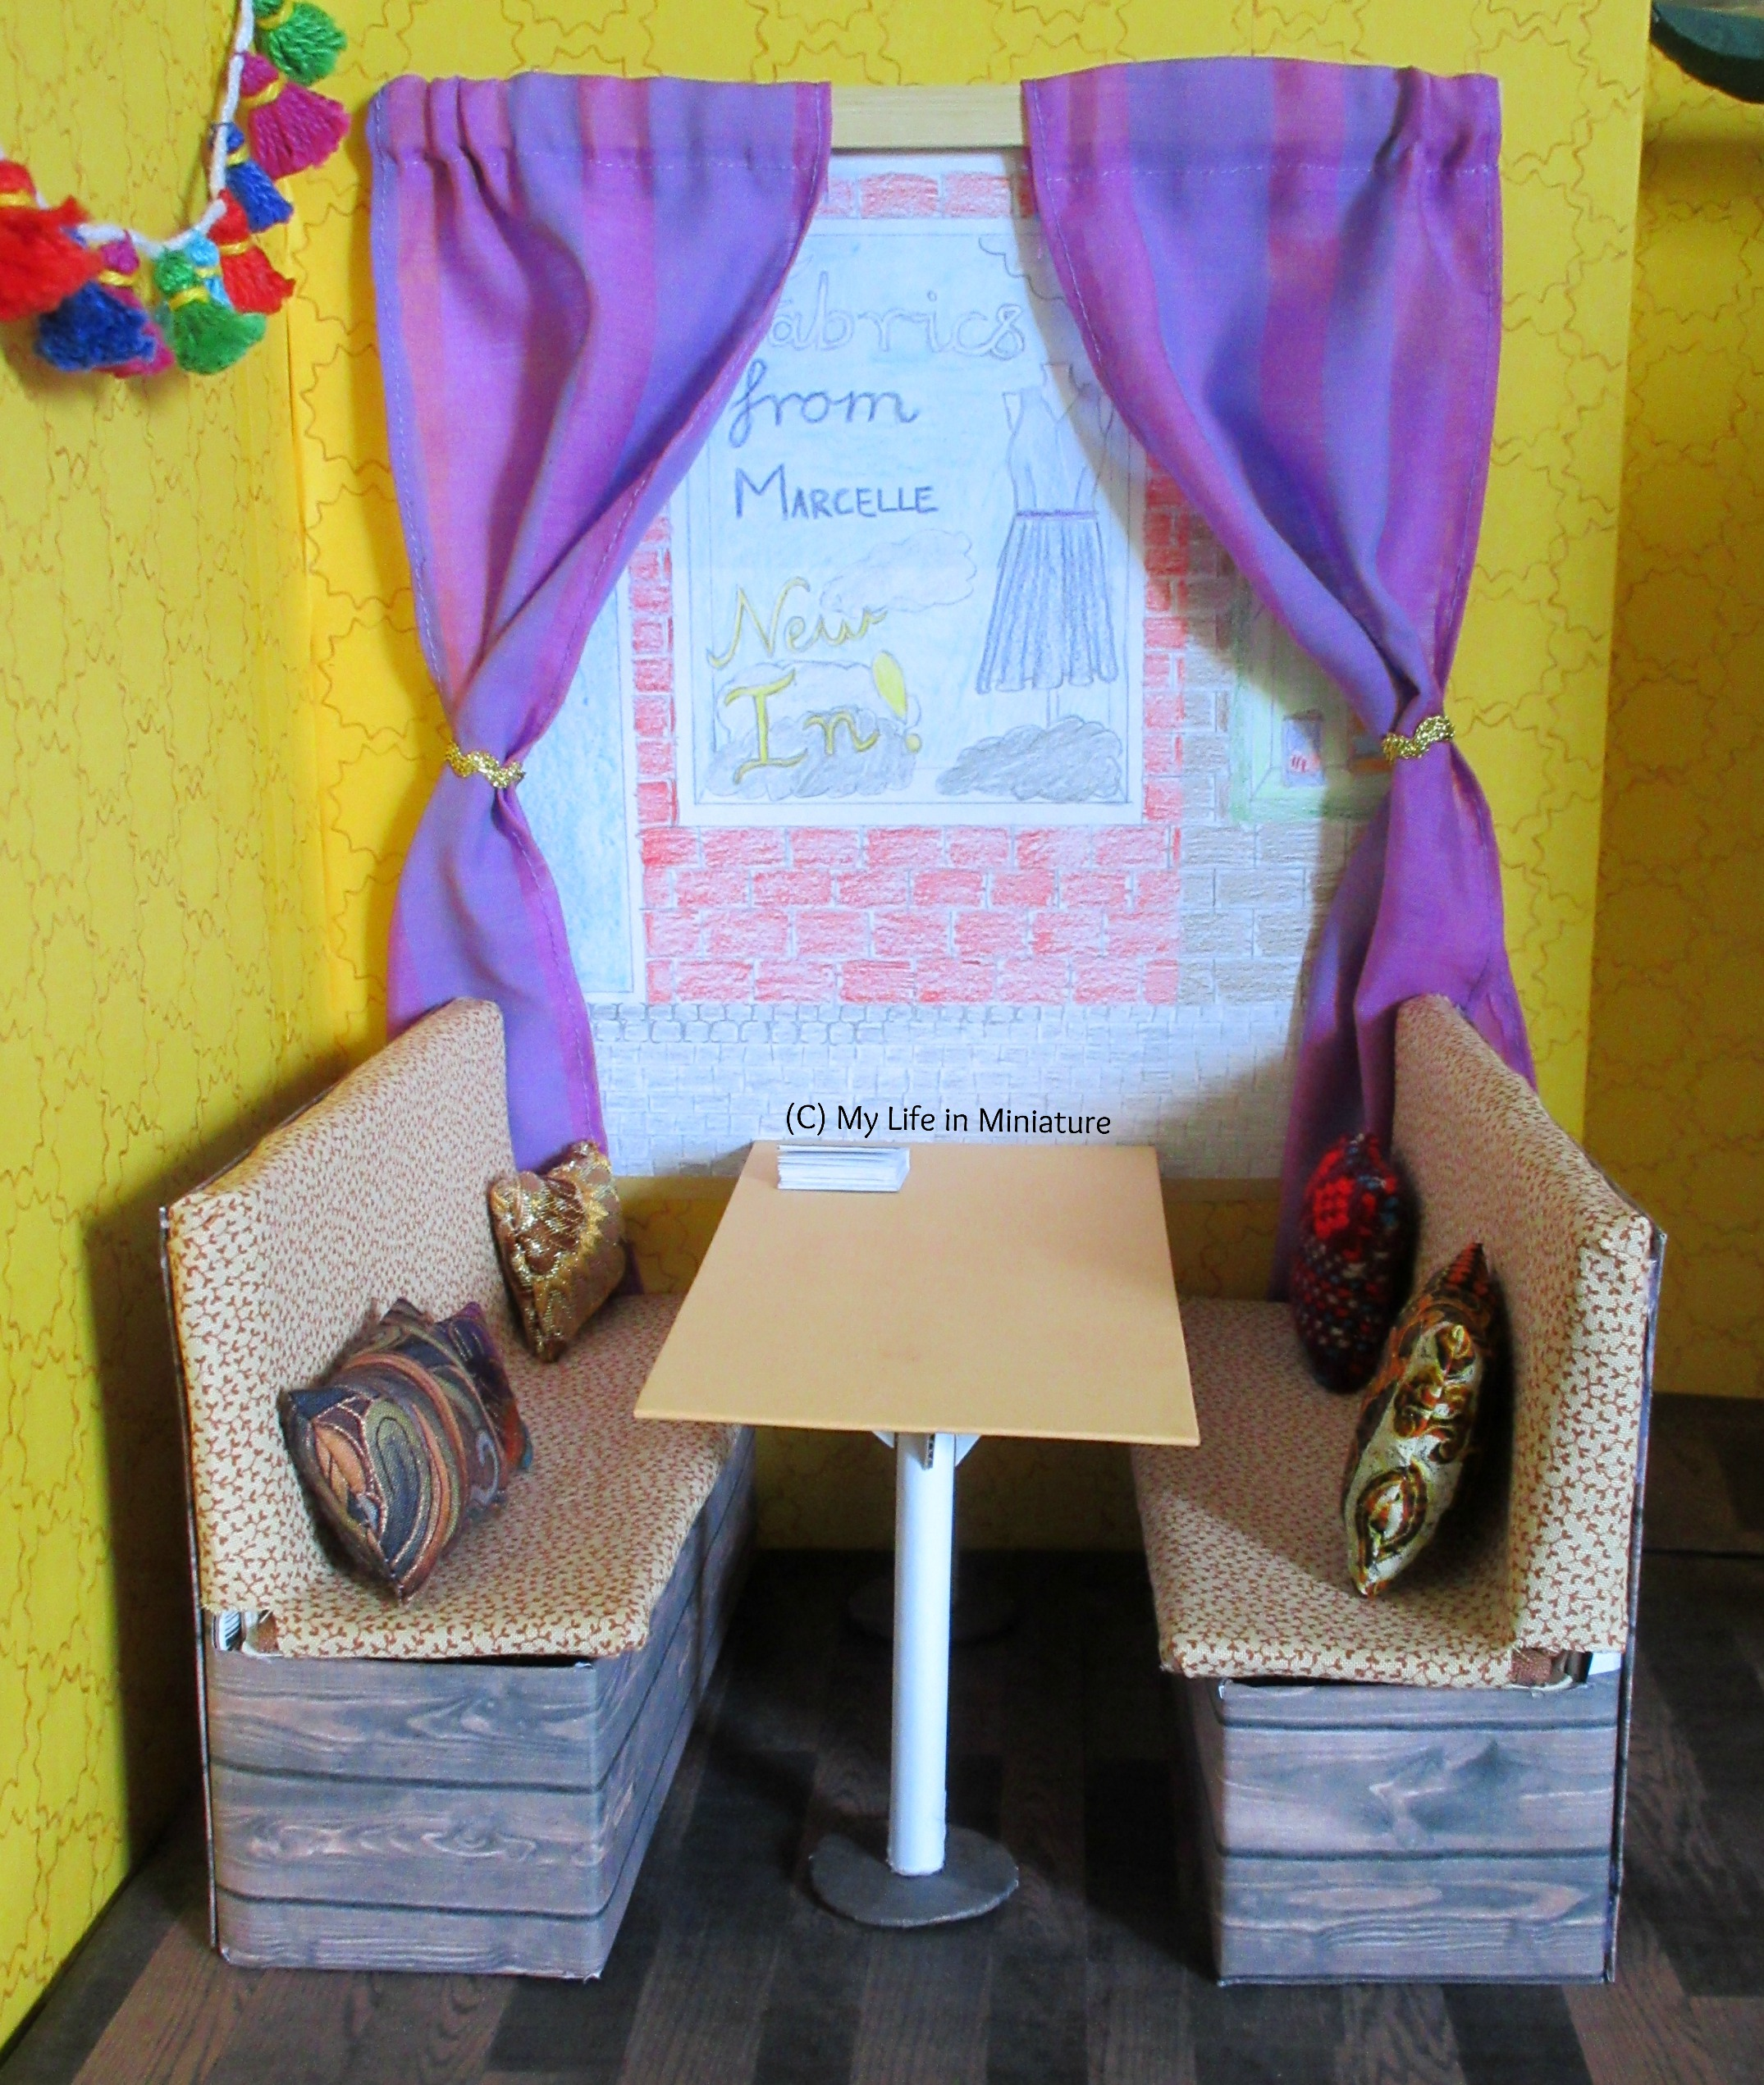 The booth area of Tea at Yaz's is visible. There are two purple curtains over the front window, pulled aside with metallic gold bric-a-brac. The curtains are on a wooden rail.